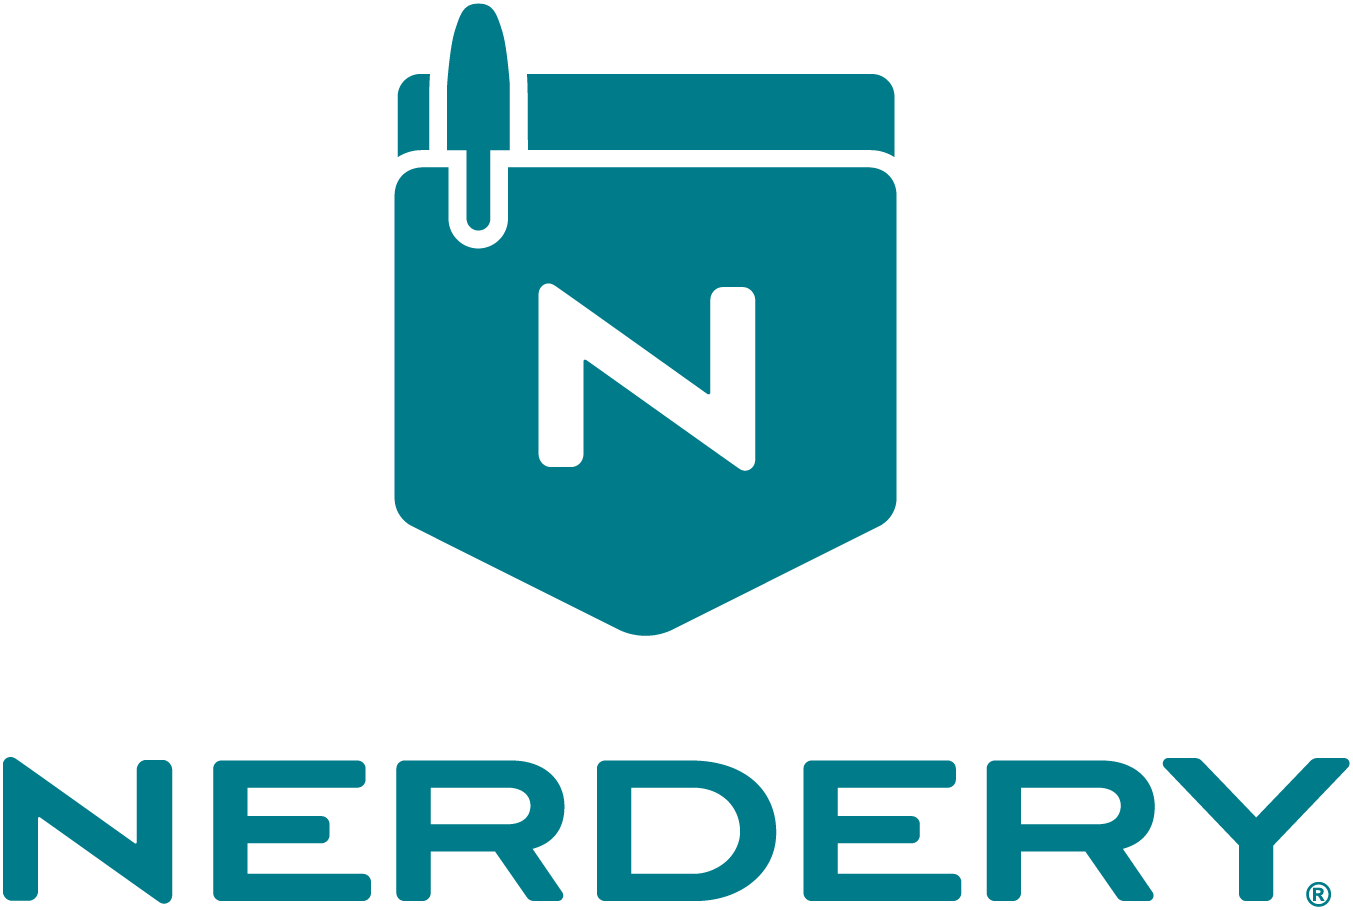 The-Nerdery-logo-registered-vertical-color_RGB